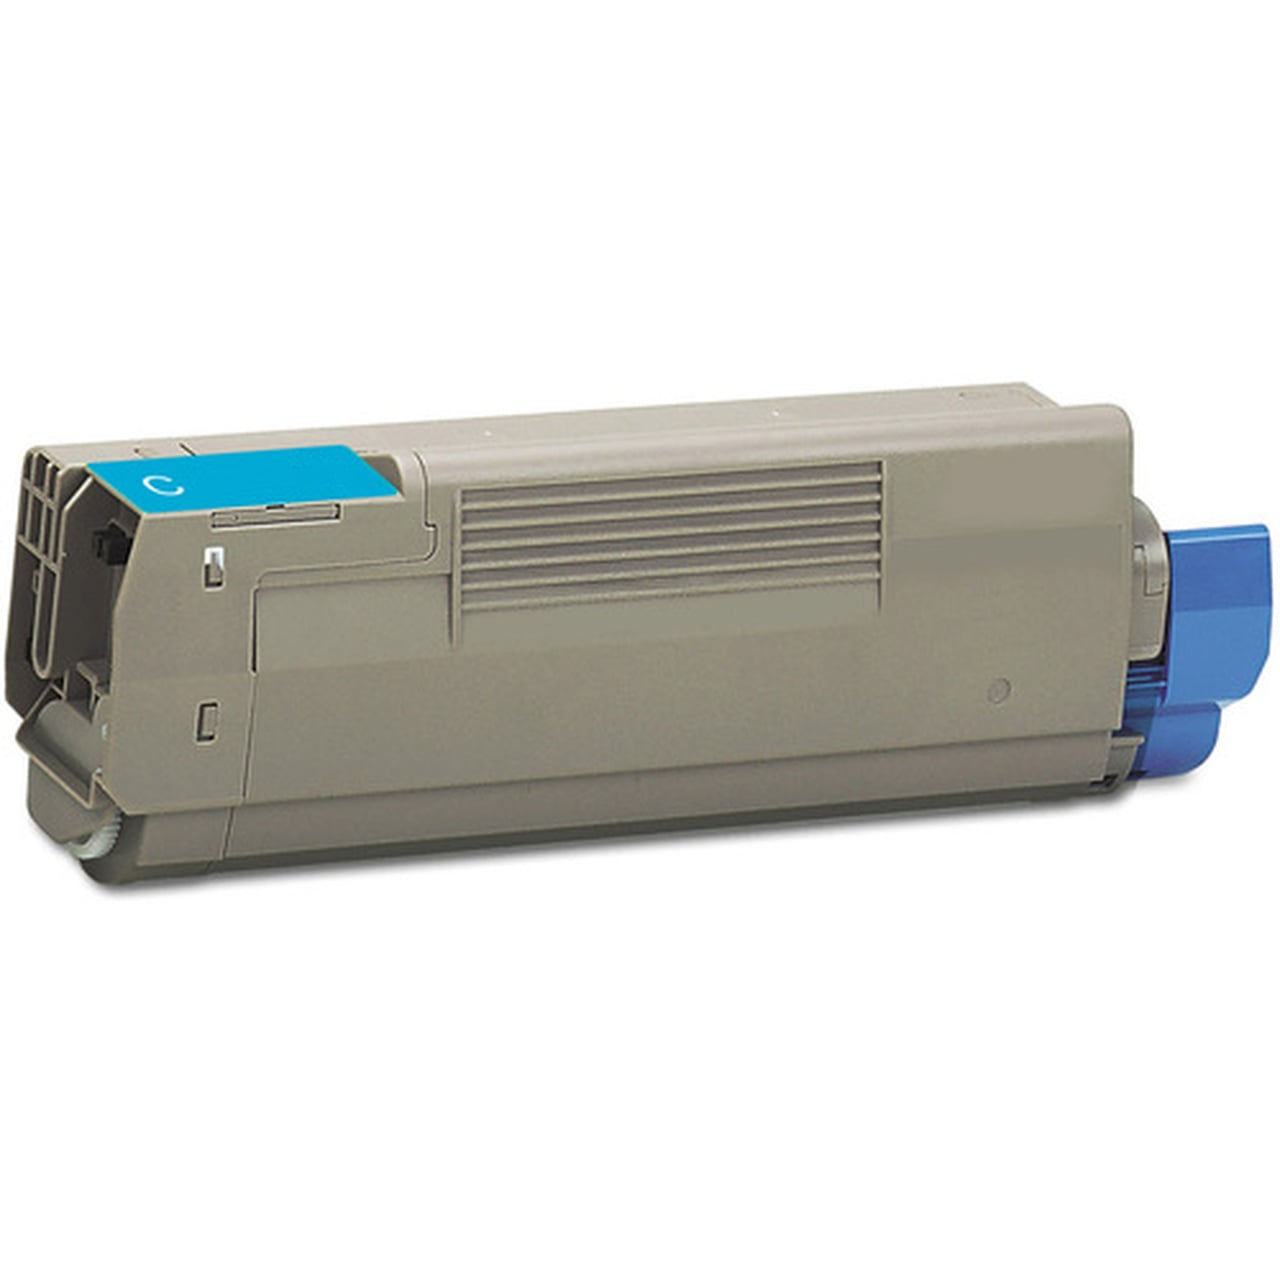 44844511 Toner Cartridge - Okidata Remanufactured (Cyan)